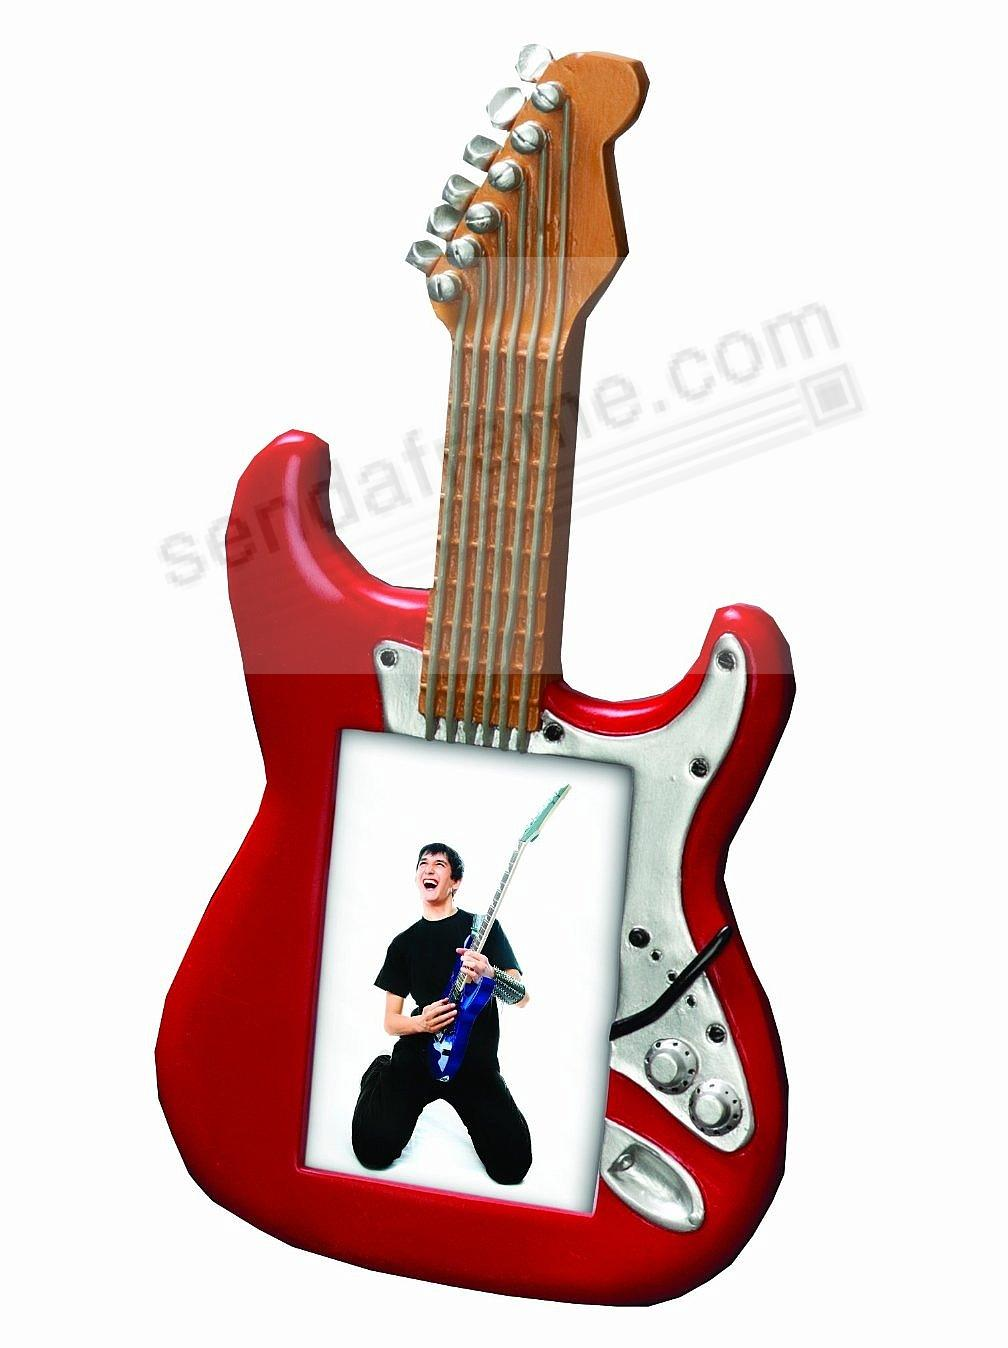 Rock star red guitar frame for your music fan by prinz picture rock star red guitar frame for your music fan by prinz jeuxipadfo Gallery